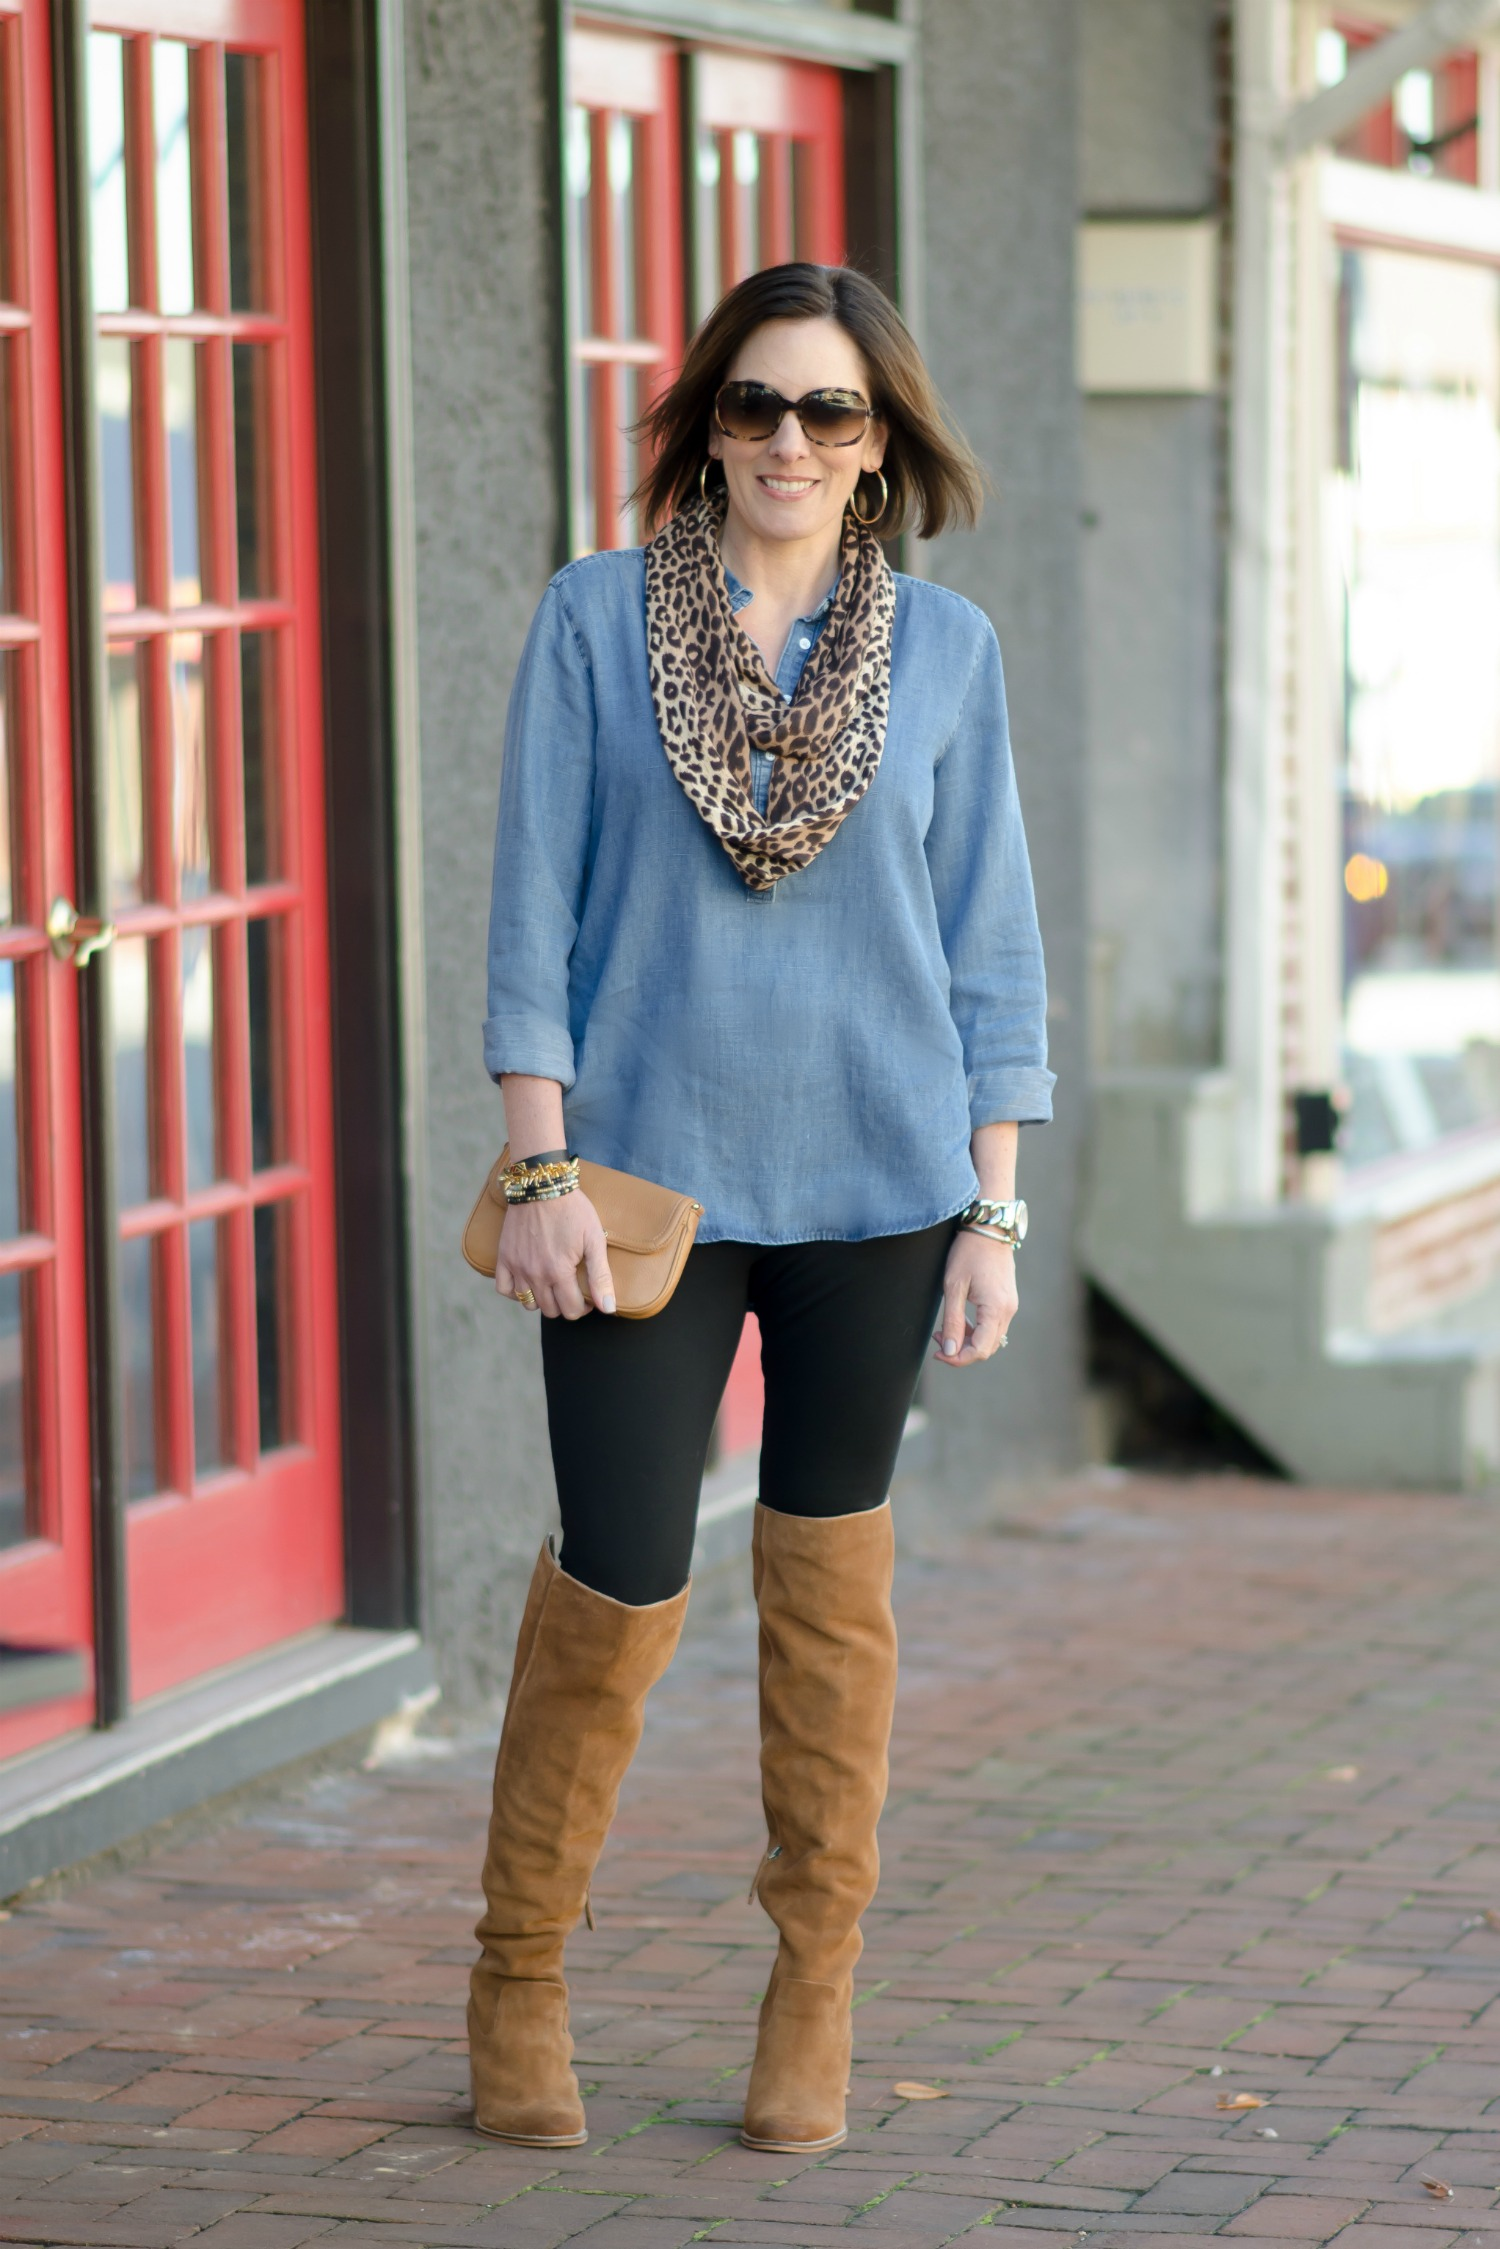 Thanksgiving Outfit Idea: Chambray Shirt and Leopard Scarf with Leggings and brown Over the Knee Boots